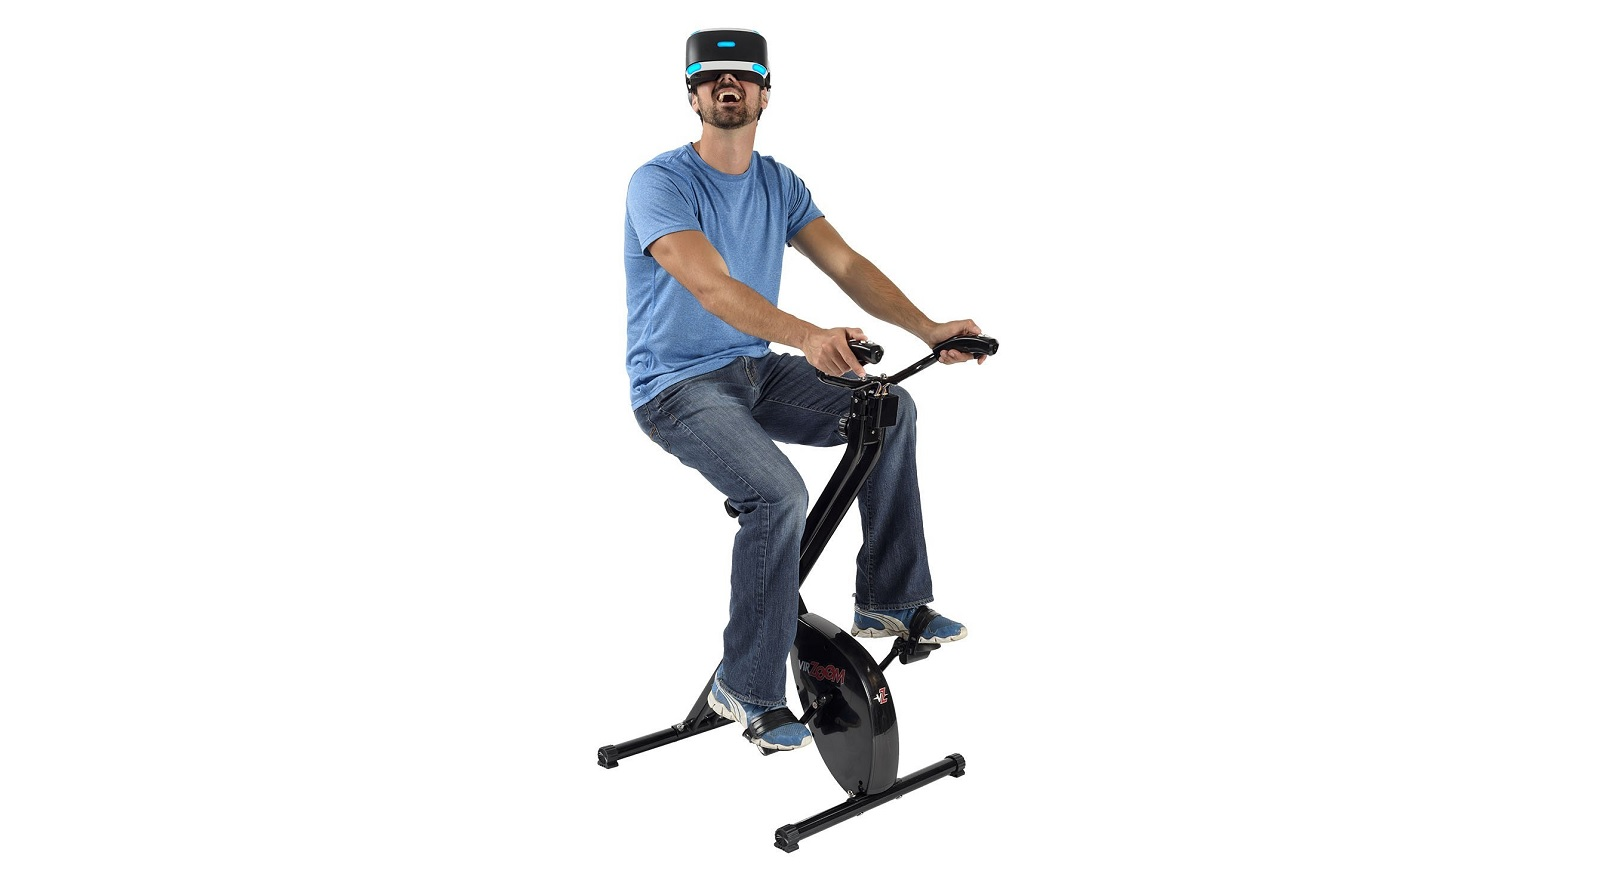 Vr Enhanced Exercise Bikes Coming To Revitize Your Local